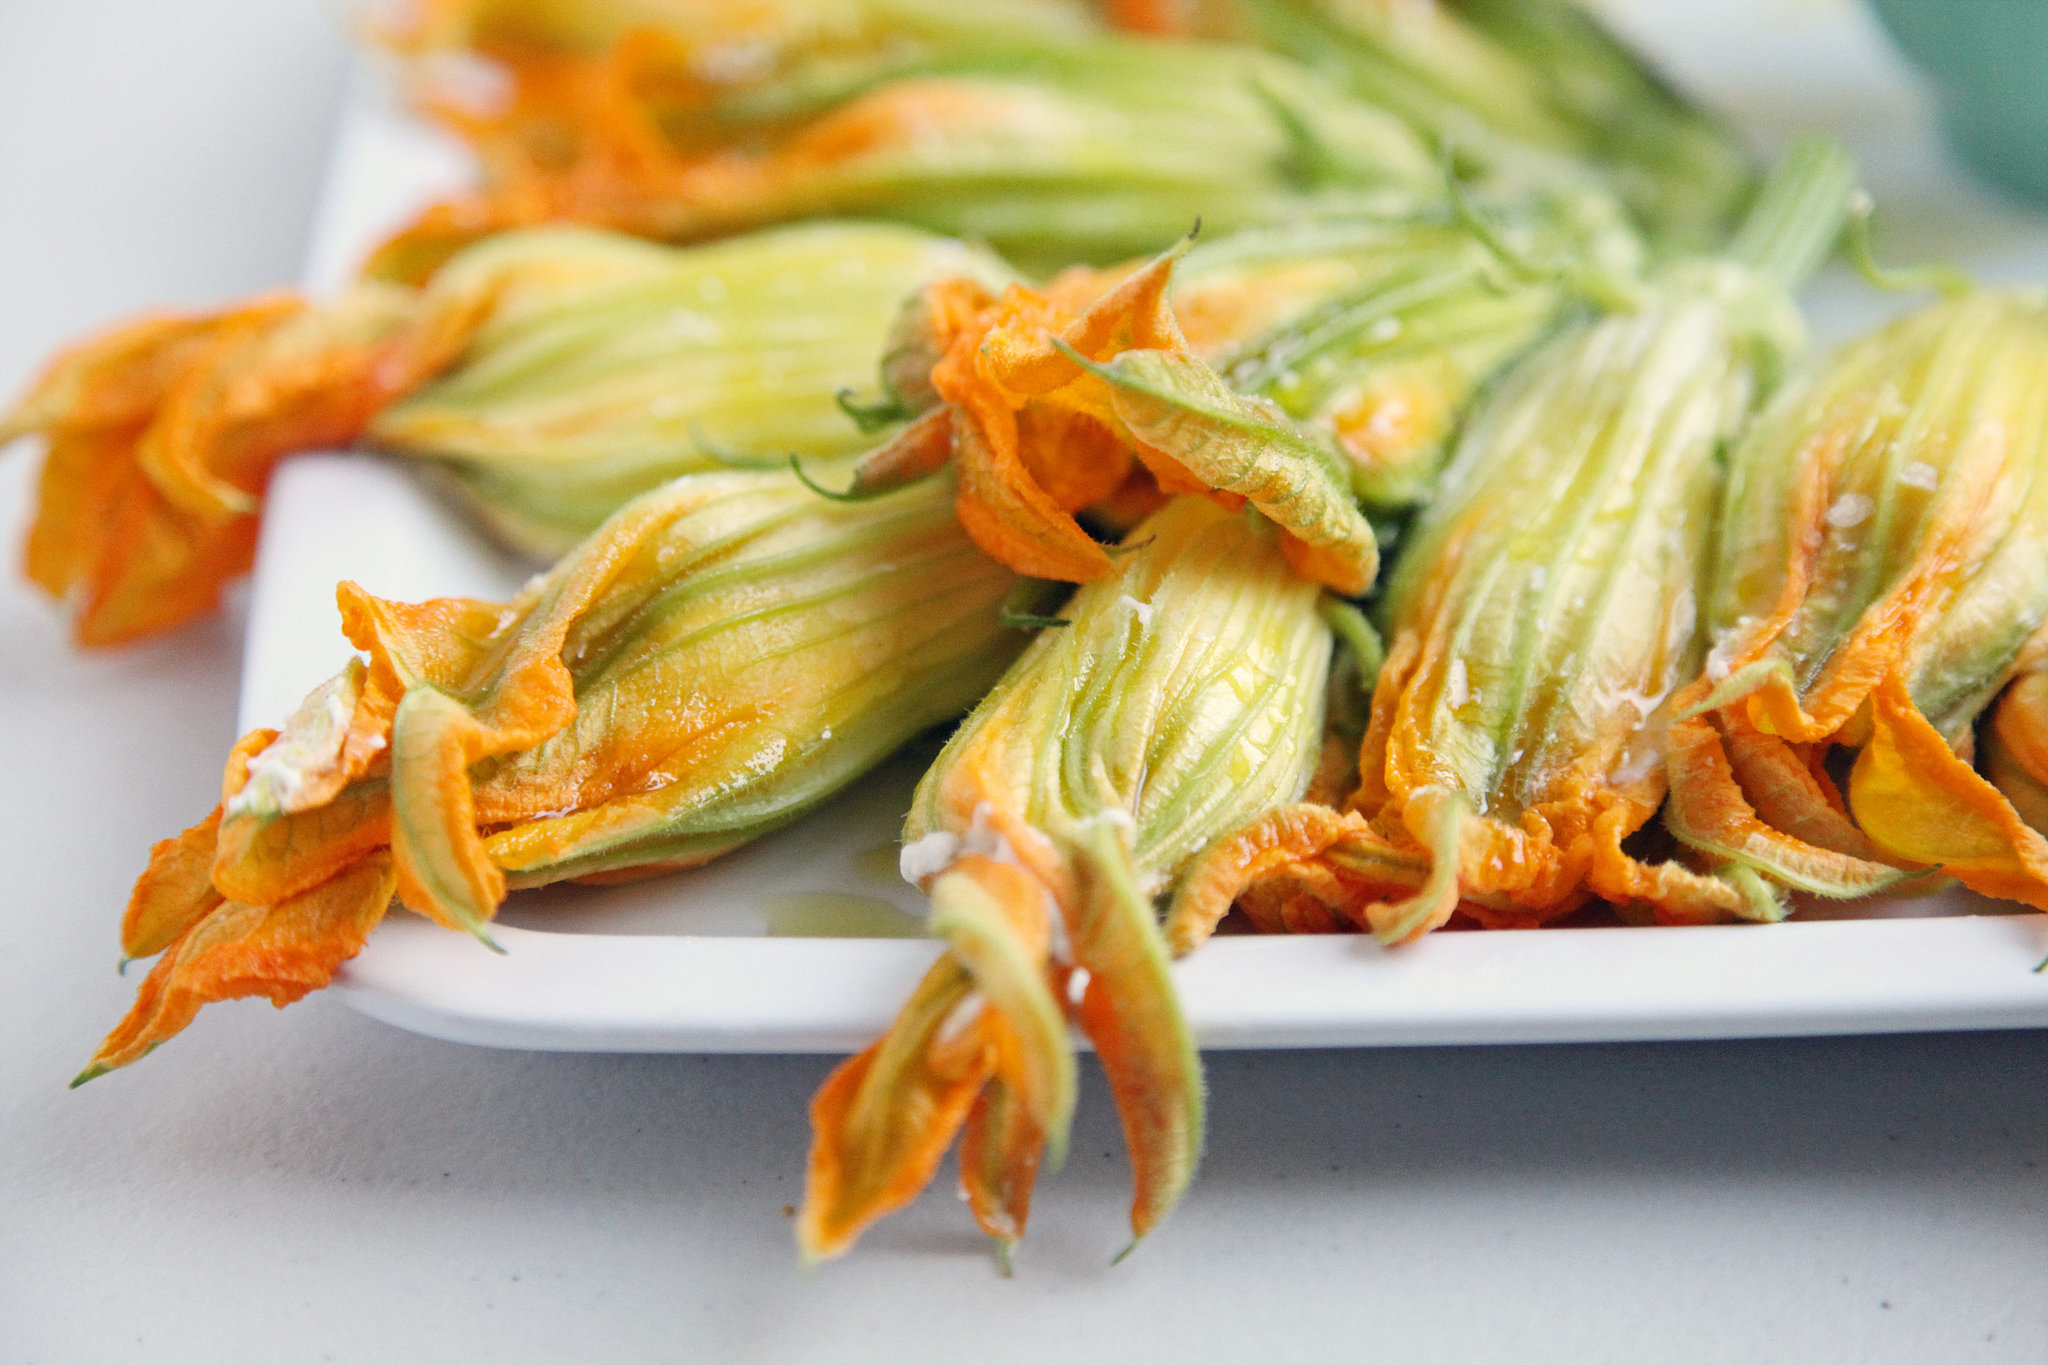 PopsugarLivingSummerBurrata-Stuffed Squash Blossom RecipeKiller App: Burrata-Stuffed Squash Blossoms With Olive TapenadeAugust 24, 2012 by Nicole Perry920 SharesChat with us on Facebook Messenger. Learn what's trending across POPSUGAR.Traditionally, squash blossoms are stuffed with creamy cheese, battered, and deep fried; lovely and enticing in their own right, to be sure, but a girl can only eat so many deep-fried snacks without palate fatigue. So when my best friend brought a basket of these Summer beauties to dinner, alongside a rustic baguette, a tub of creamy burrata, and a jar of pungent olive tapenade, I knew I was in for a real treat.I watched in rapt attention as she deftly prepared this quick appetizer, barely able to restrain myself from sneaking a taste of the burrata as it oozed with cream. Mere minutes later, we bit in, and at that moment, I was sold. Not only are squash blossoms extraordinarily beautiful in their raw state, but when shed of their battered exterior, their nuanced delicate flavor - 웹